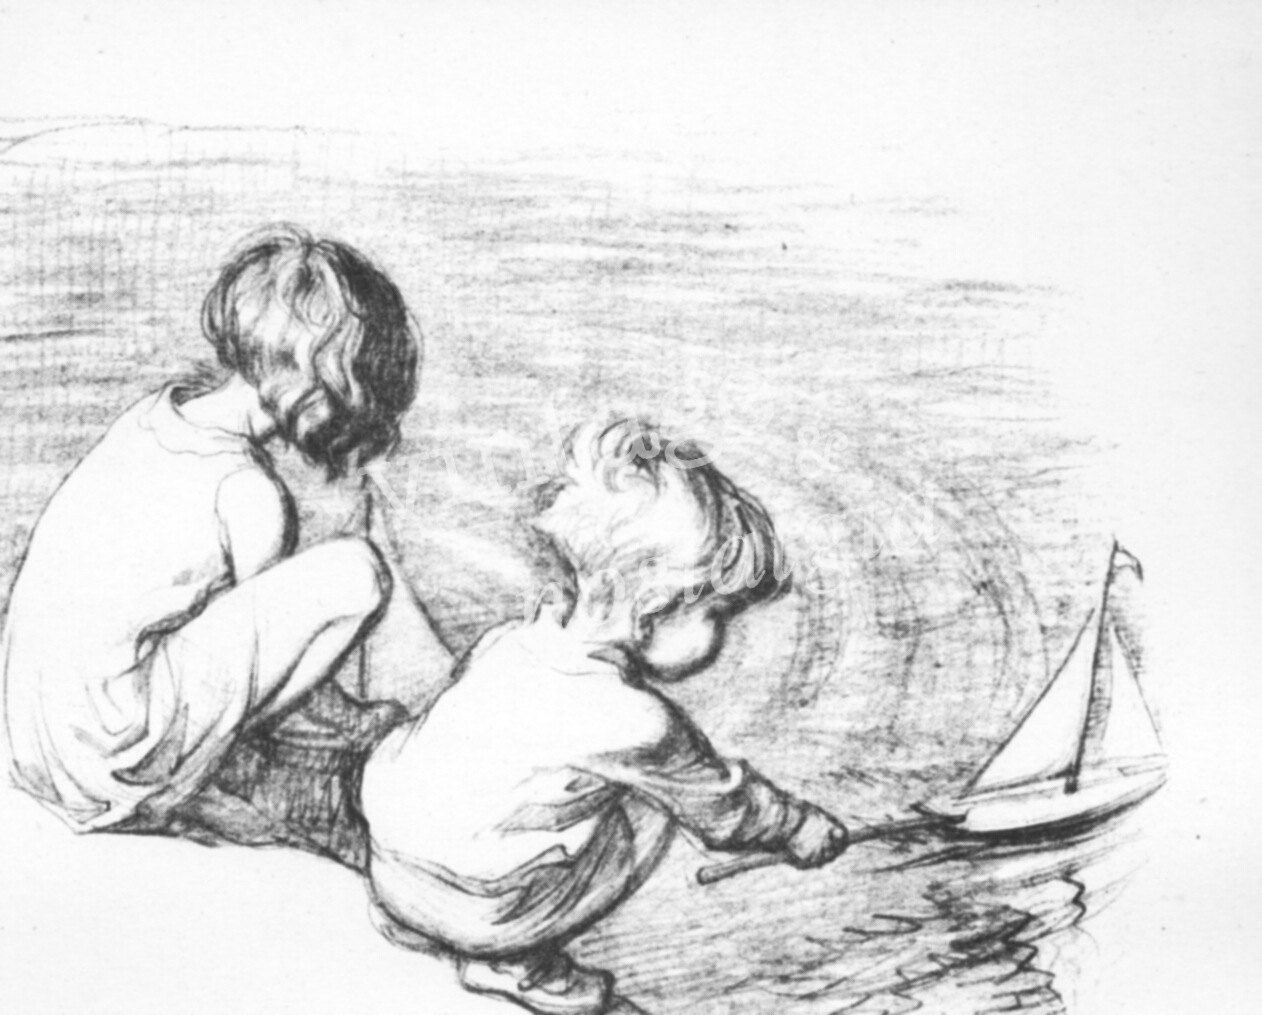 Bedroom drawing for kids - Vintage Children Pencil Sketch Playing Boat Pond Vintage Children S Illustration Bedroom Decor